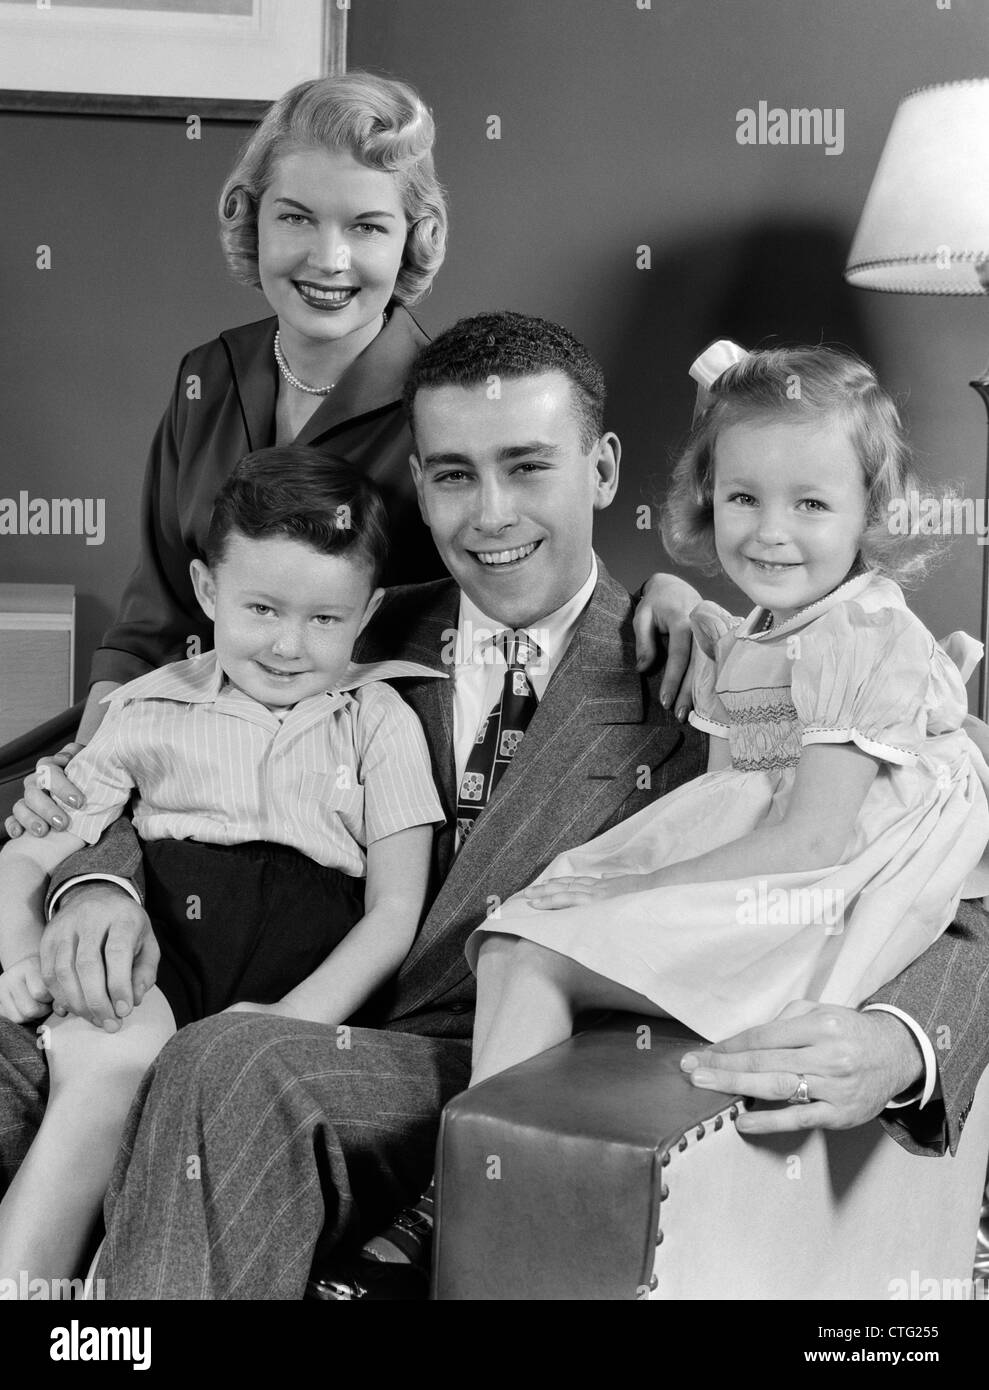 1940s 1950s FAMILY OF FOUR PORTRAIT SITTING IN LIVING ROOM CHAIR LOOKING AT CAMERA - Stock Image